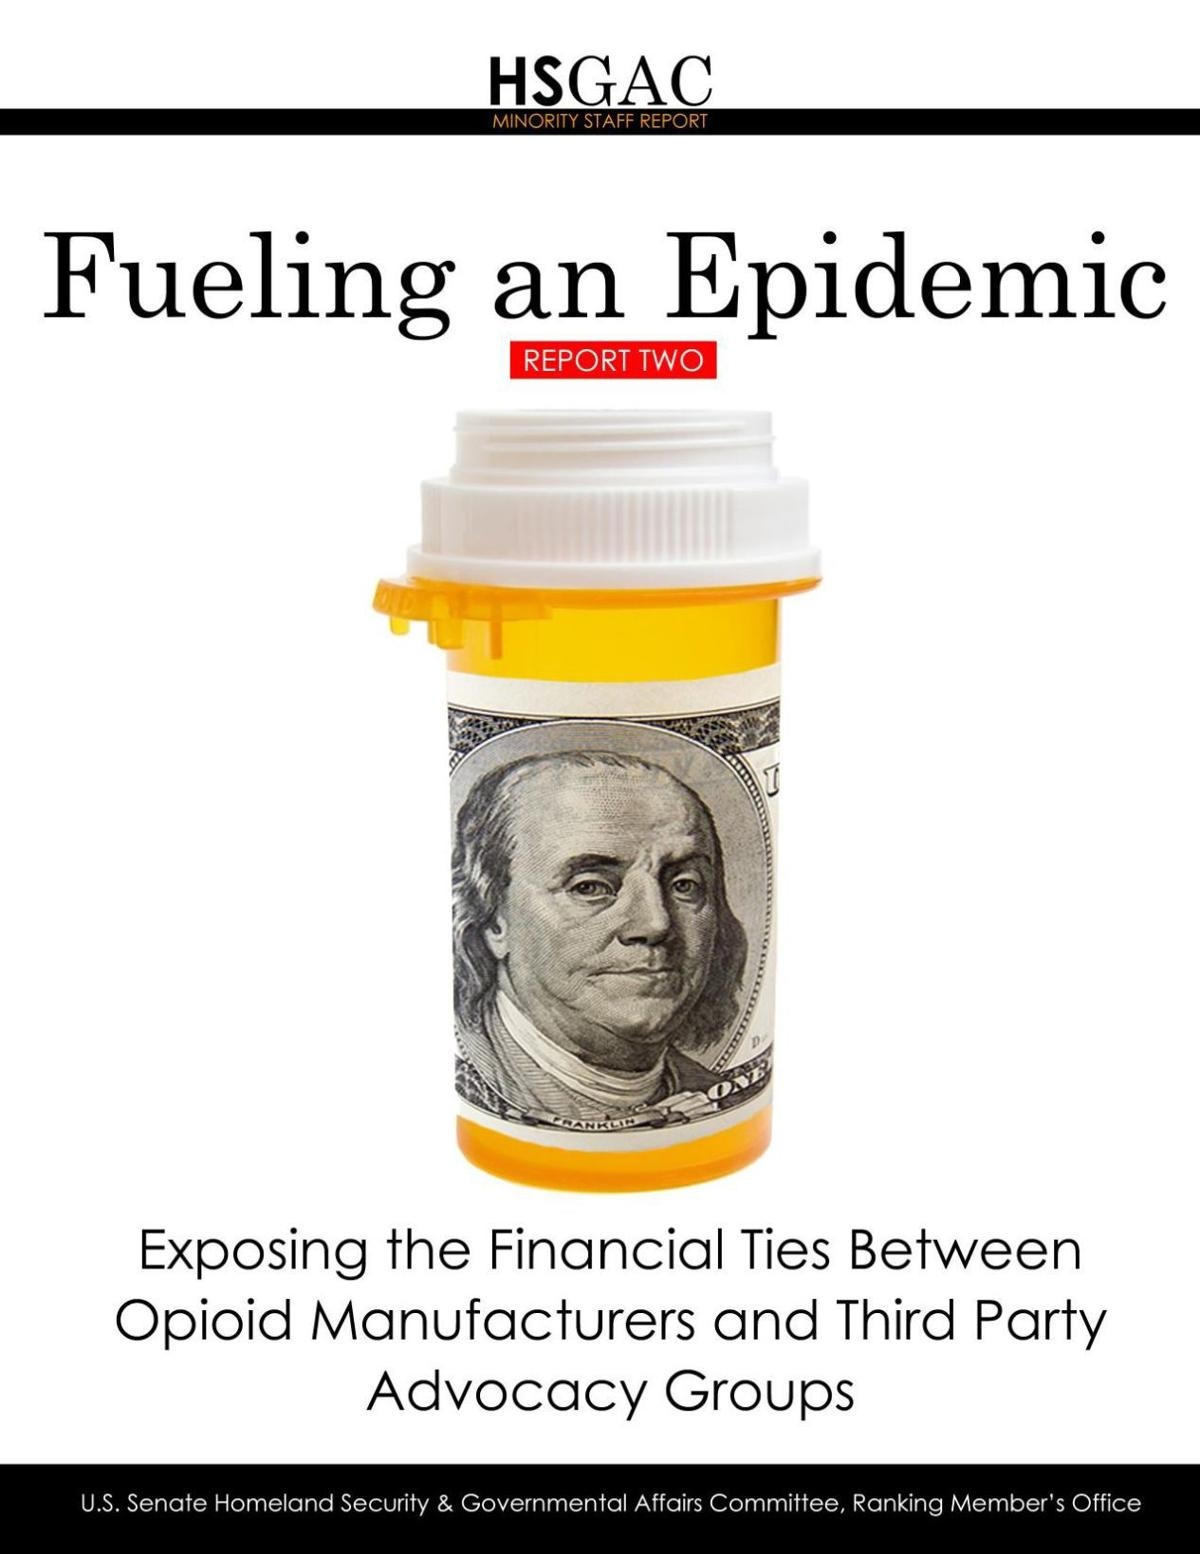 'Fueling an Epidemic' report on opioids